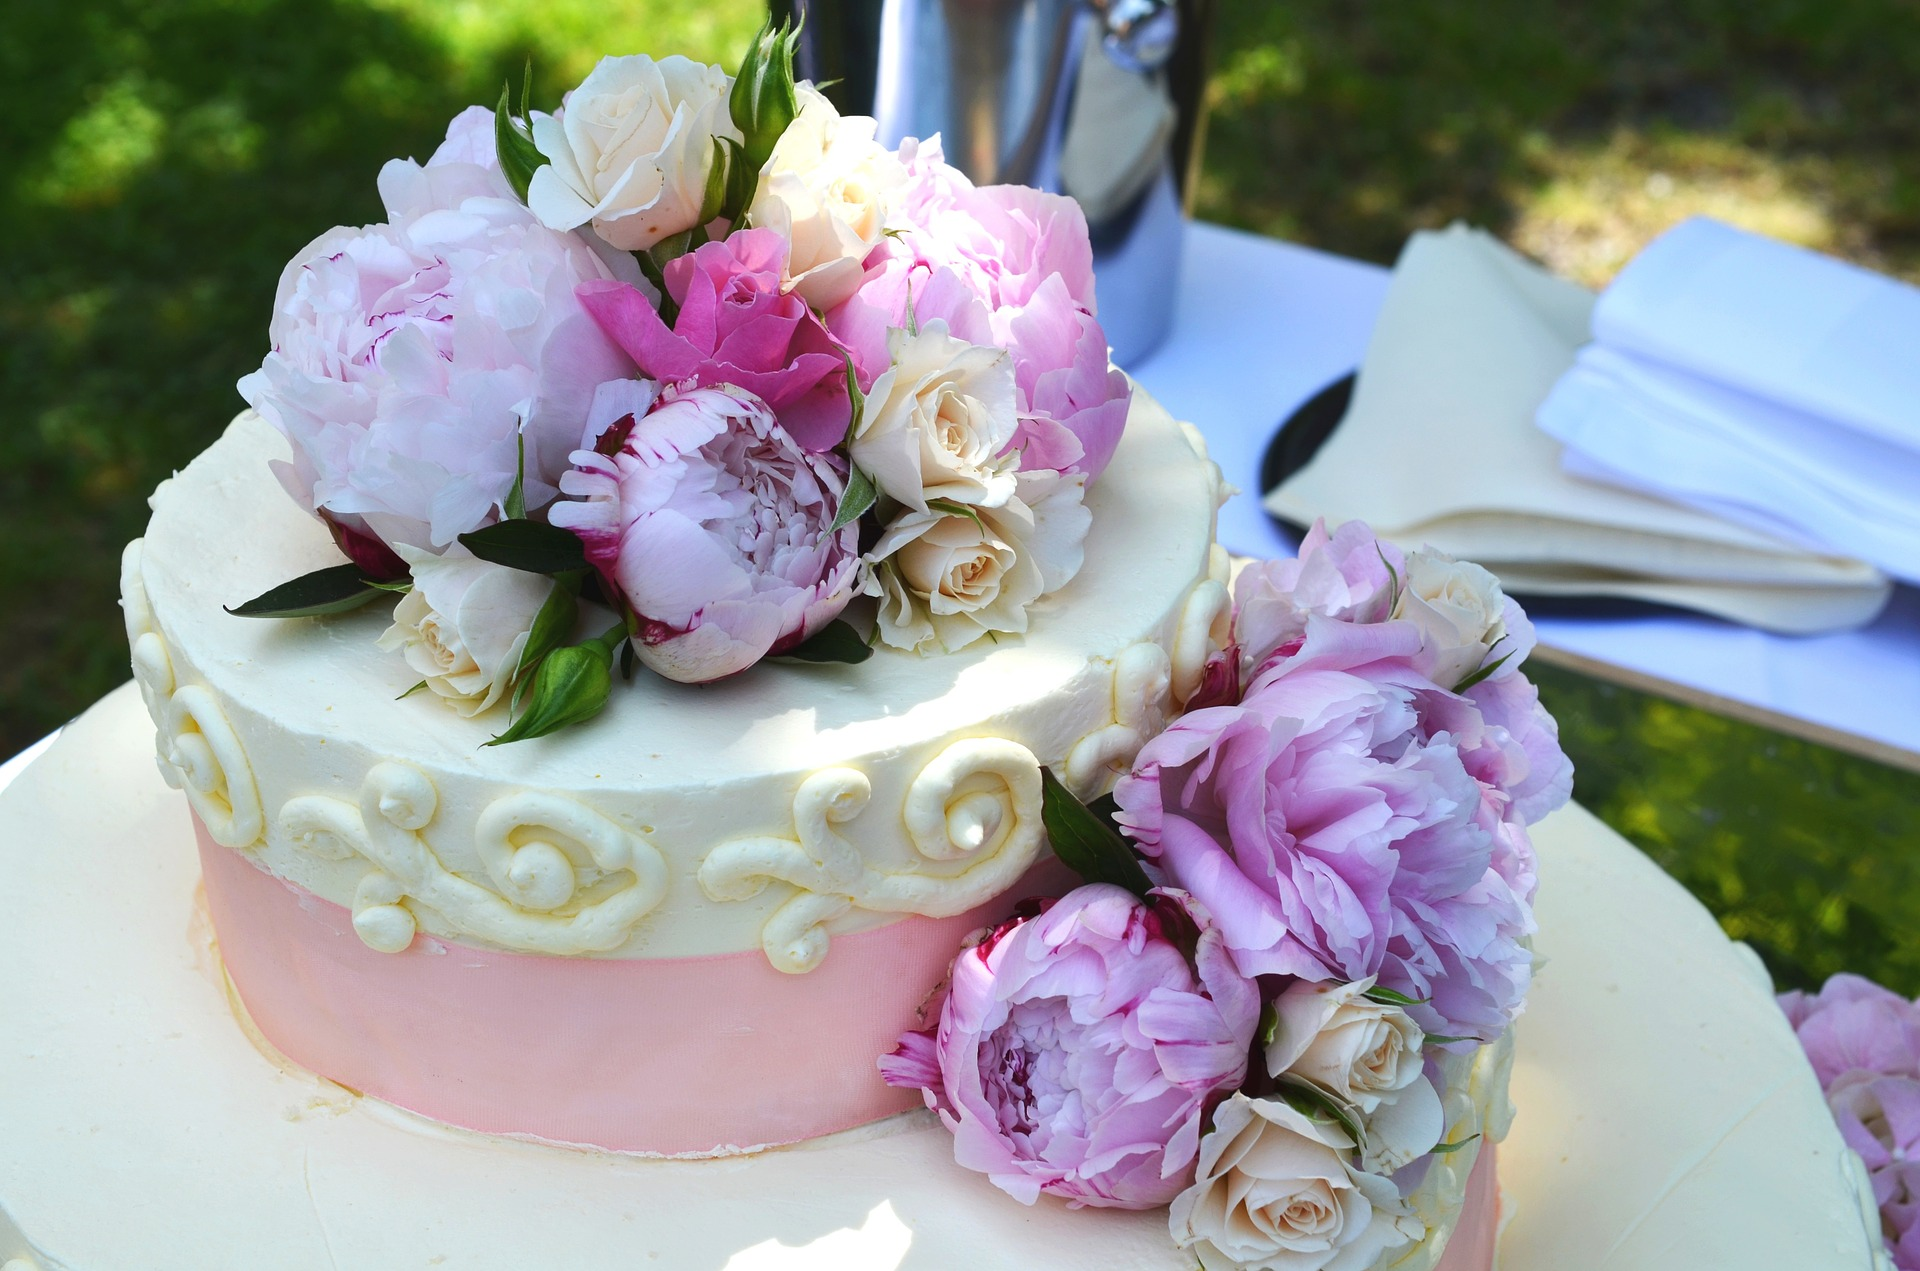 Beautifuly decorated wedding cake in Spain.